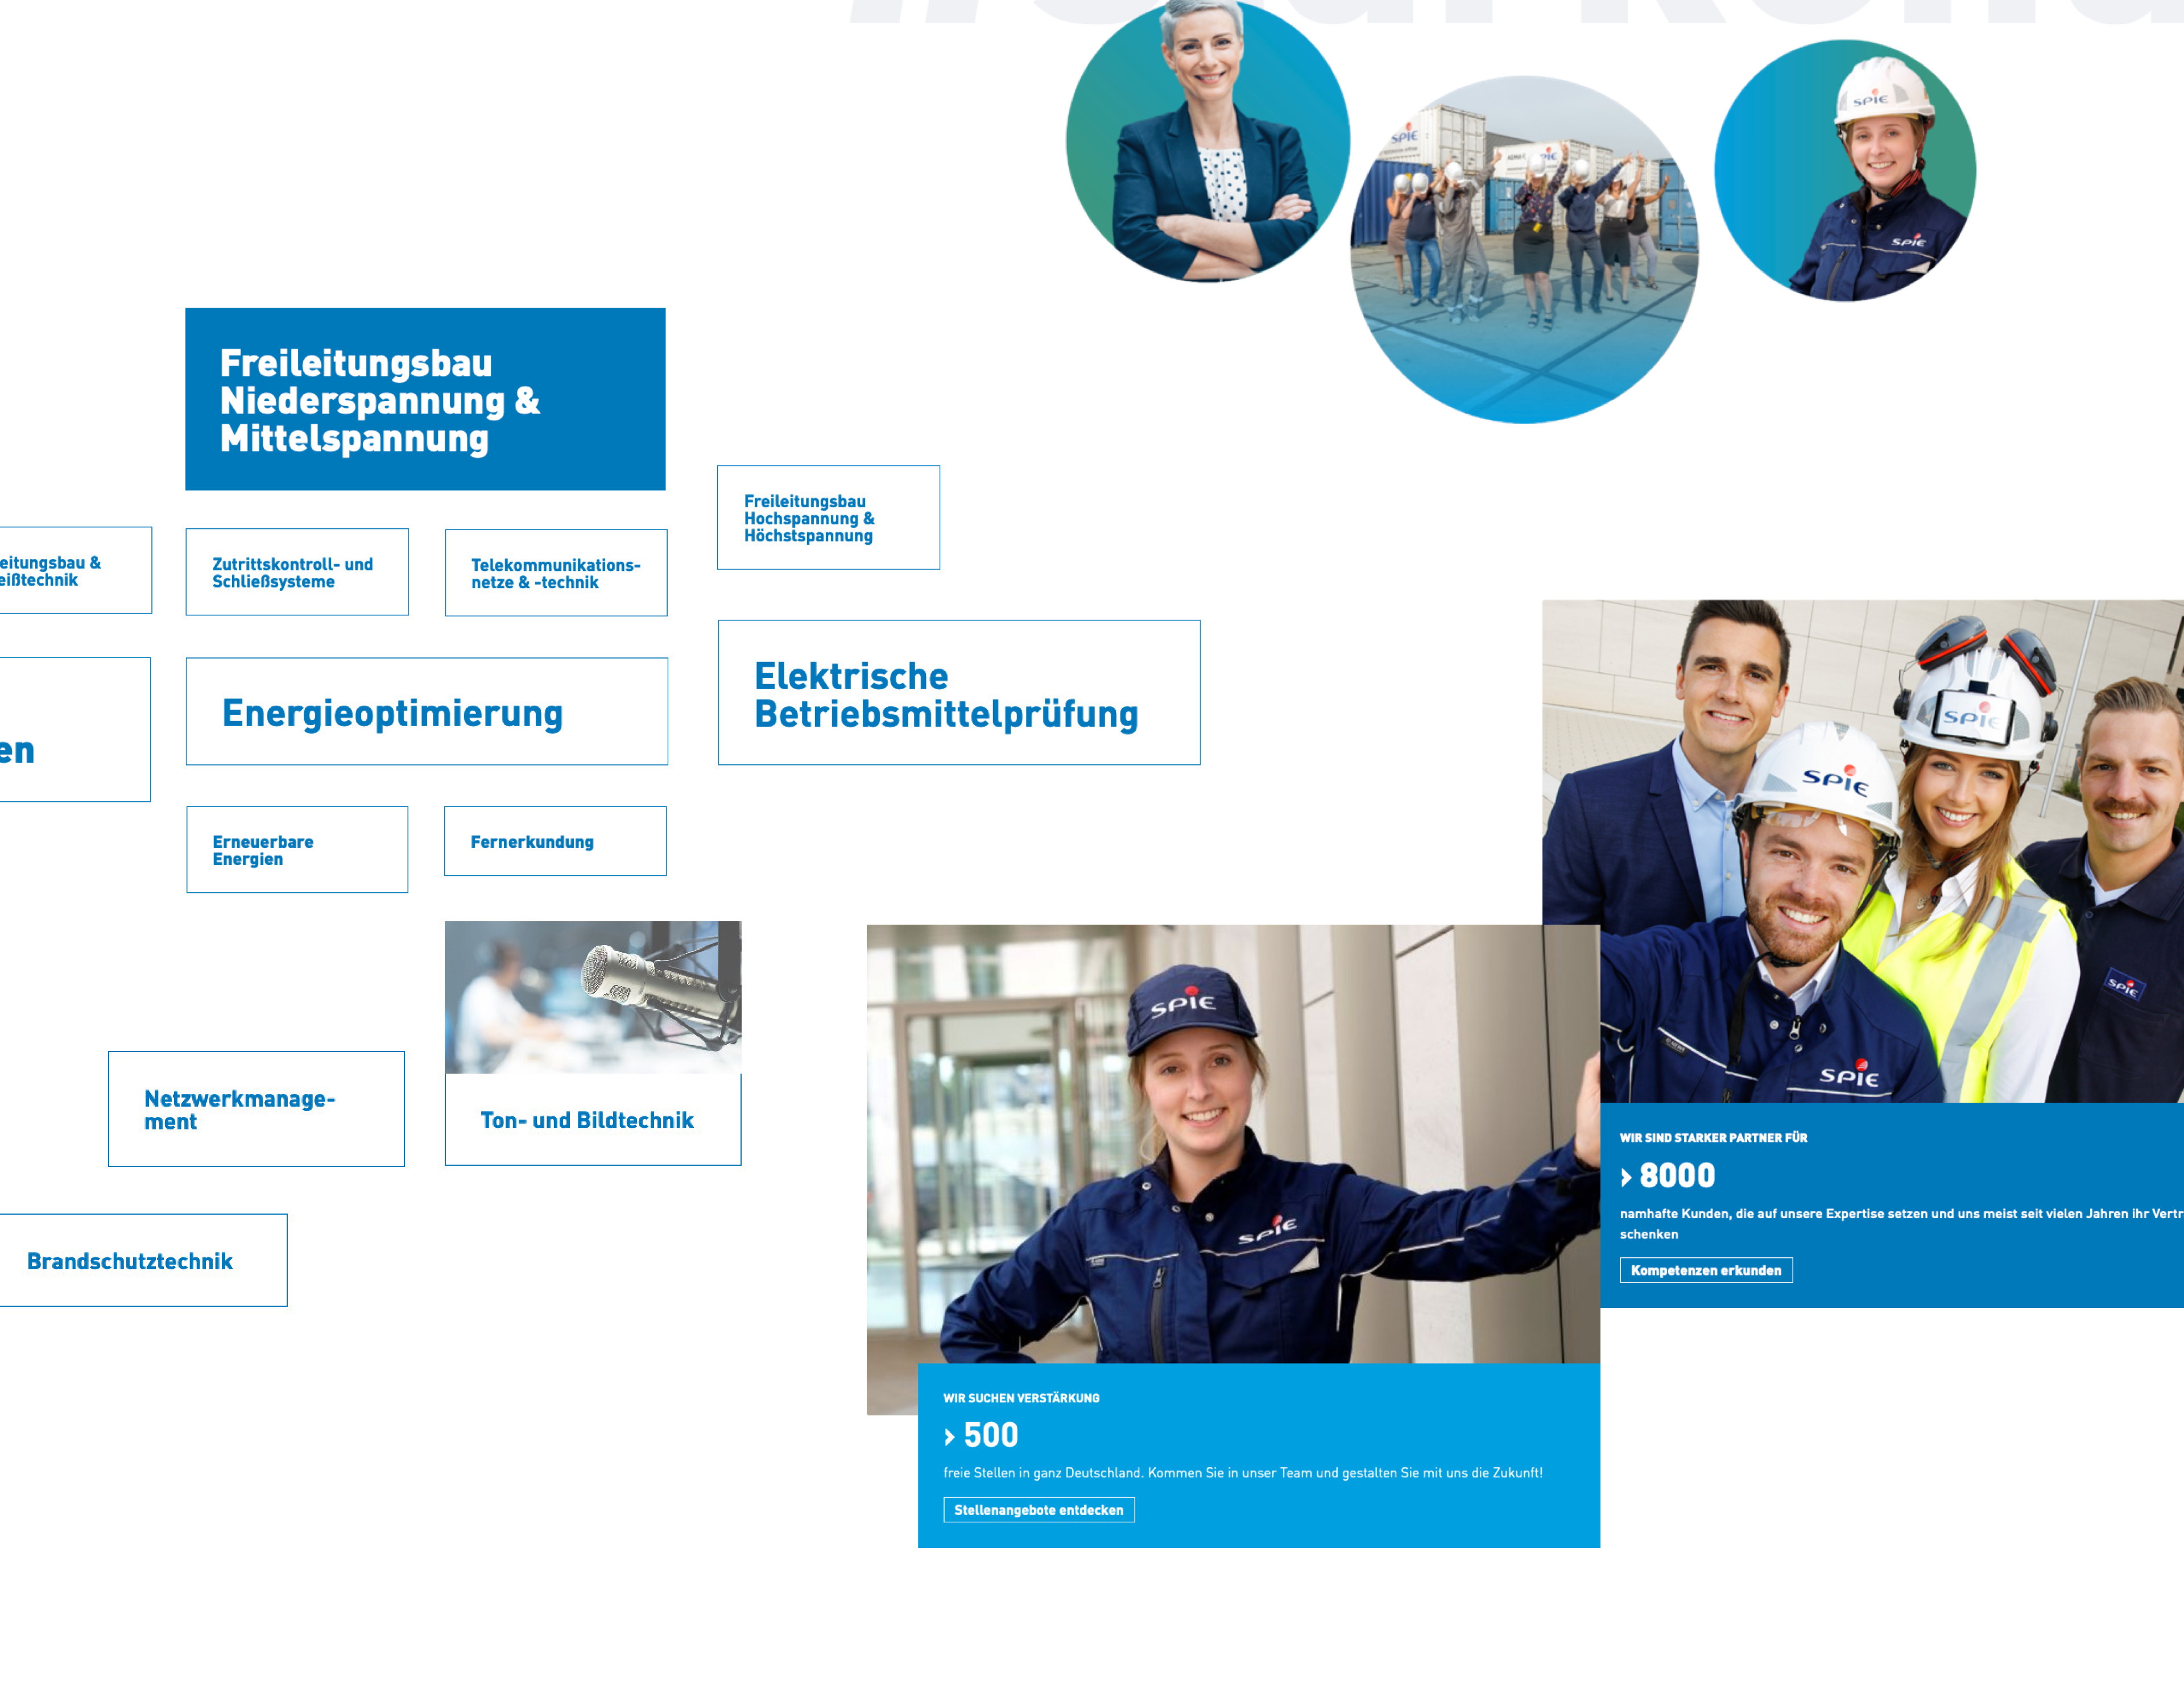 Spie Career Page